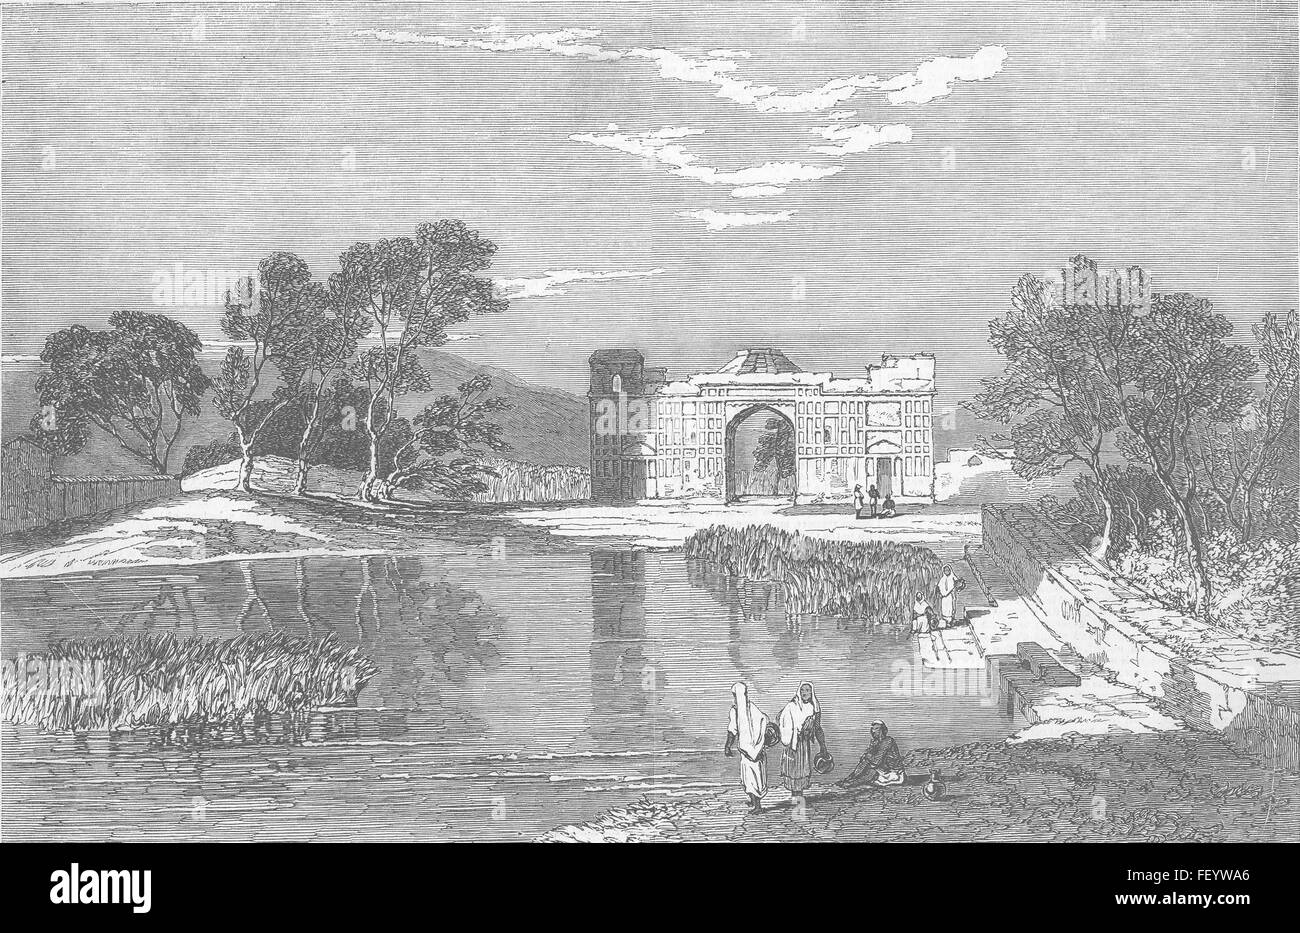 PAKISTAN Husyn Abdal In The Punjab 1850 Illustrated London News